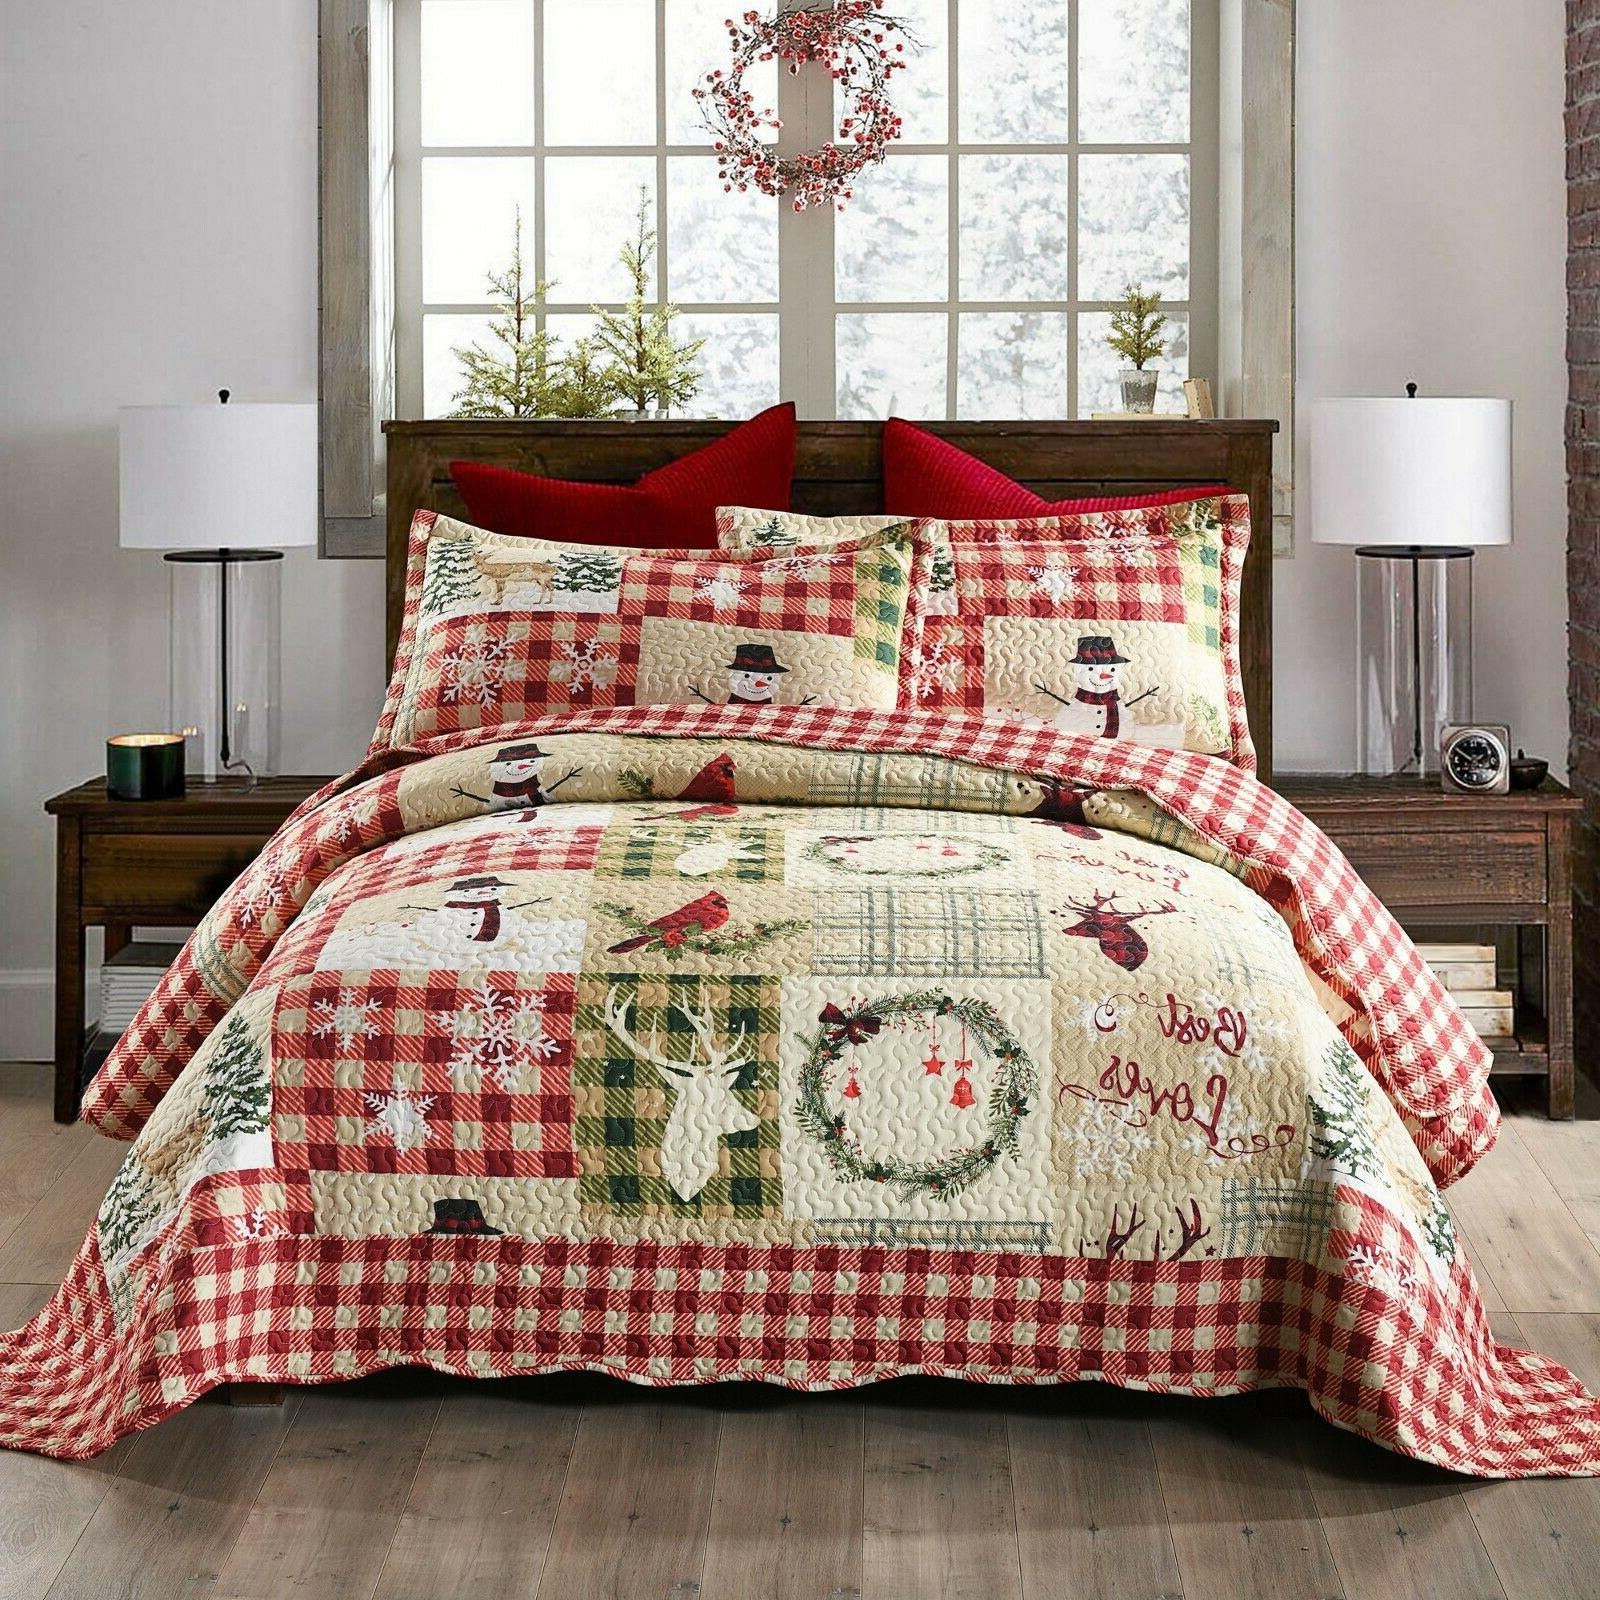 3 piece christmas quilt lodge cabin bedspread